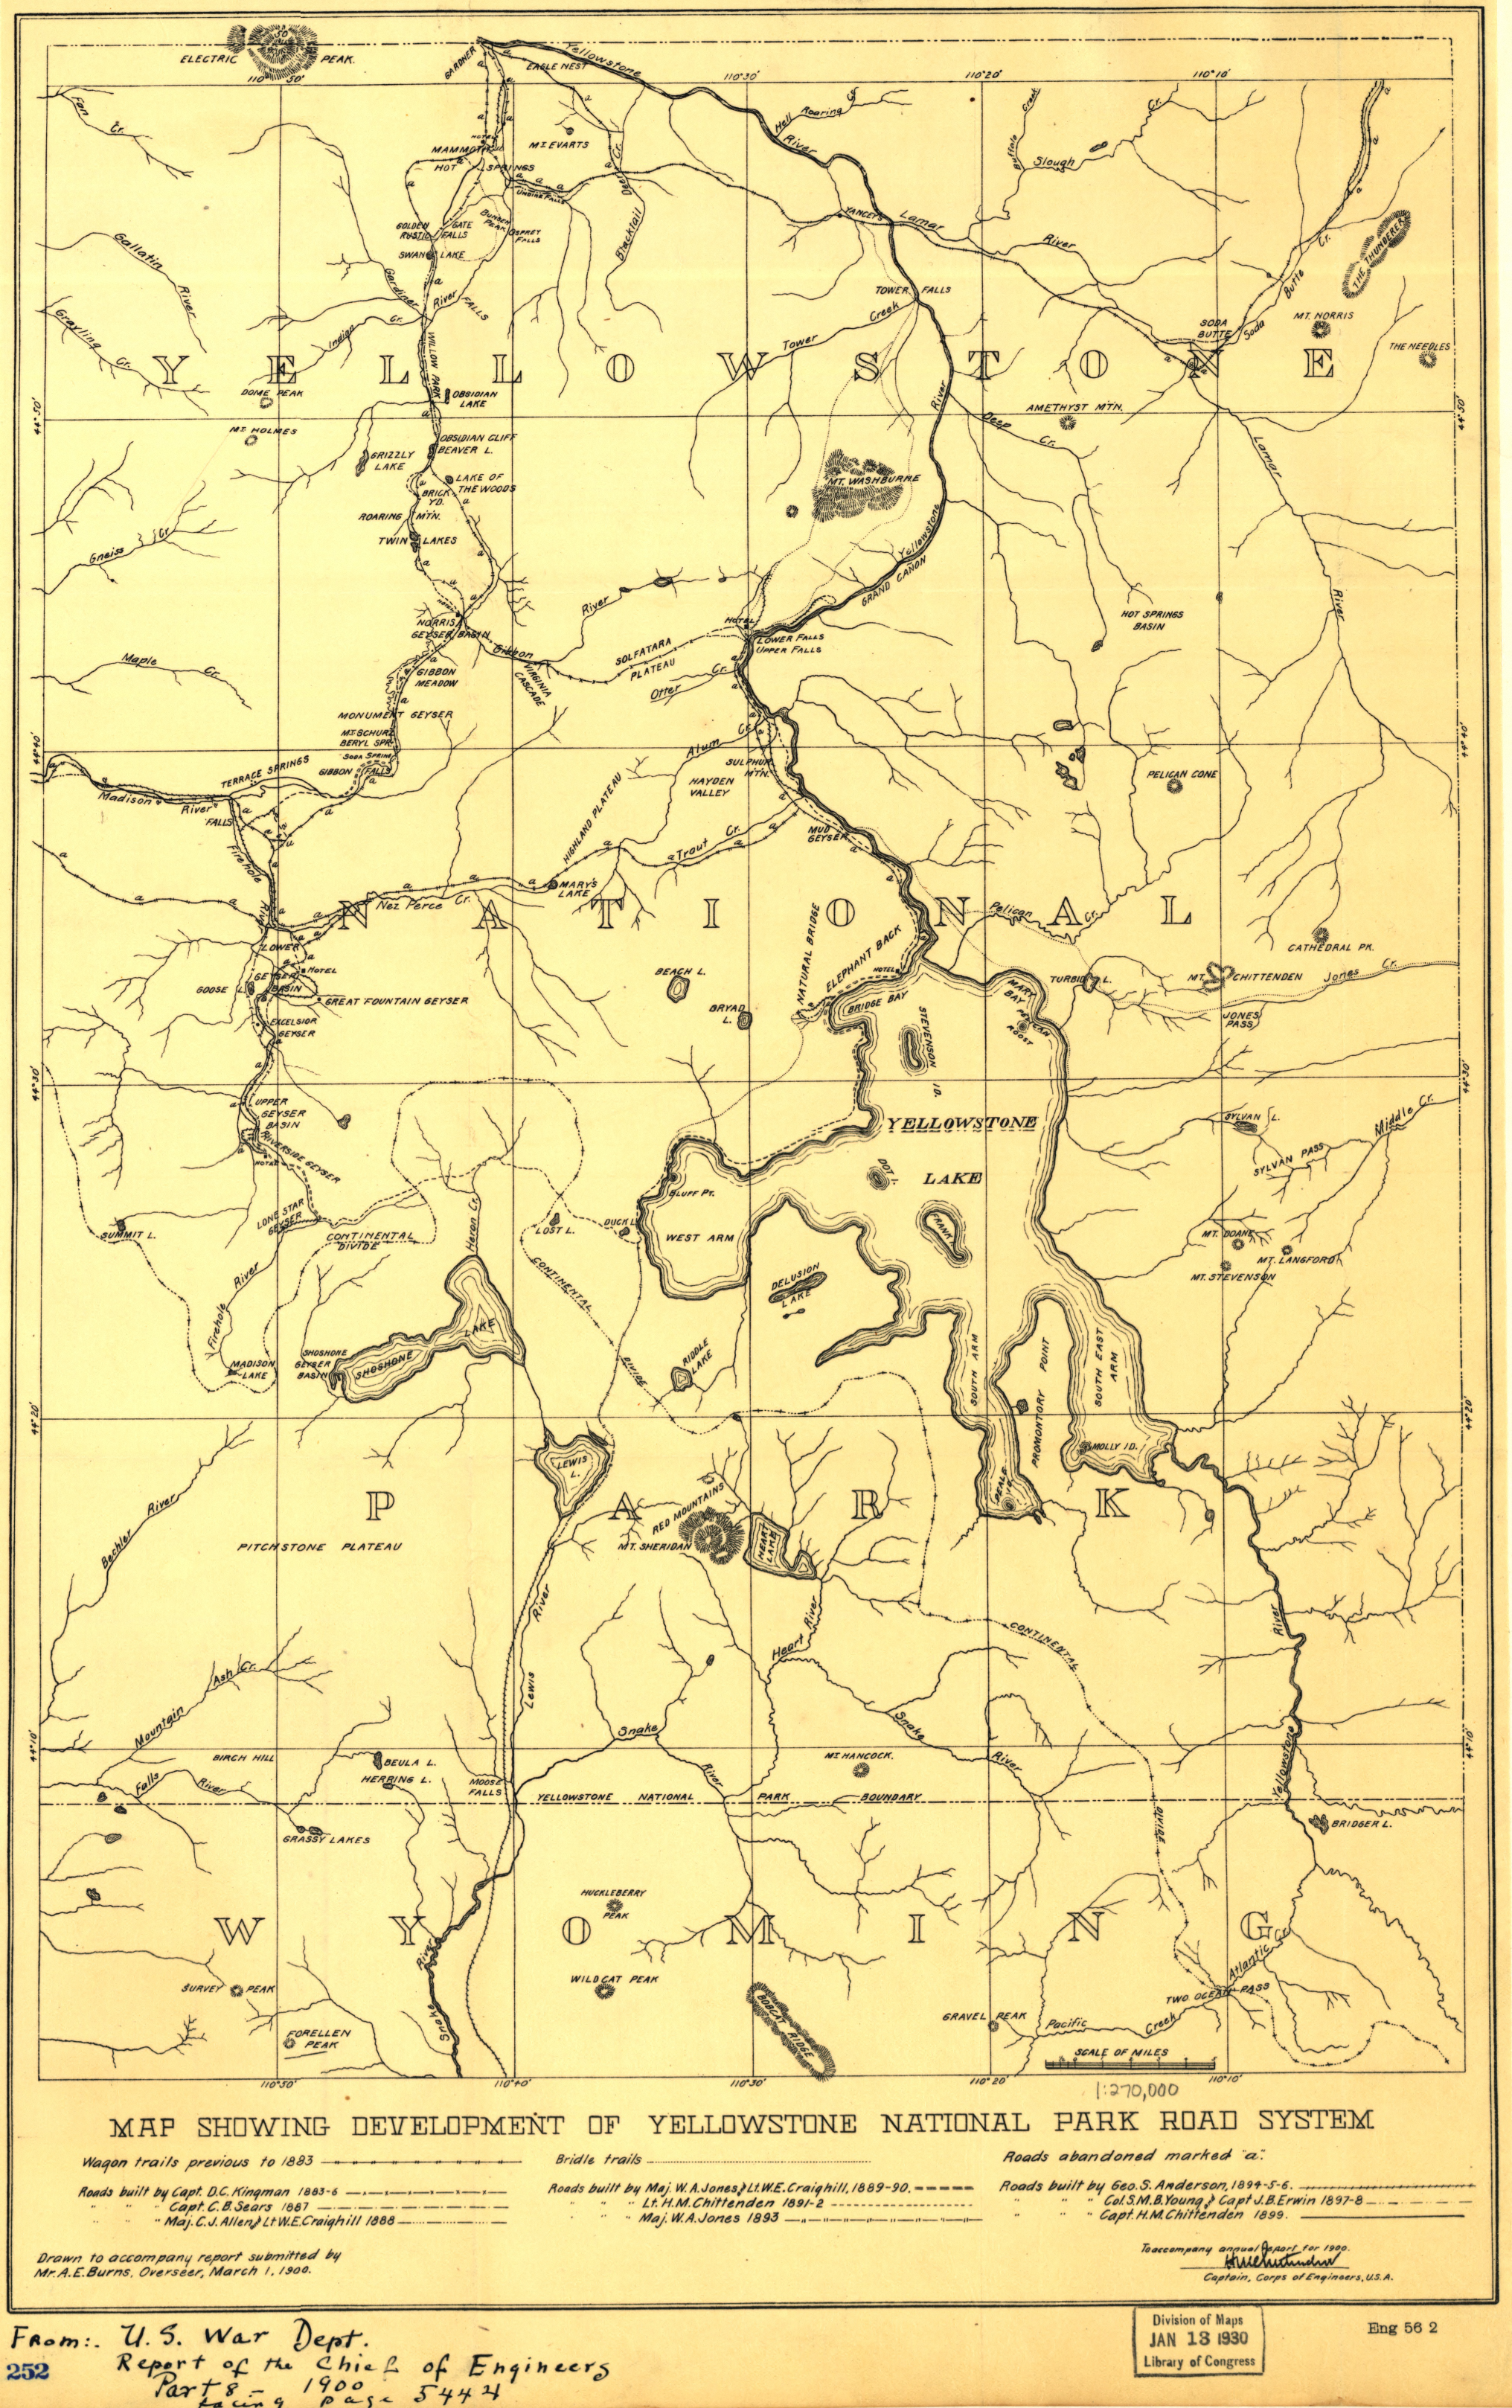 Yellowstone National Park Road System Map from the Library of Congress Collection